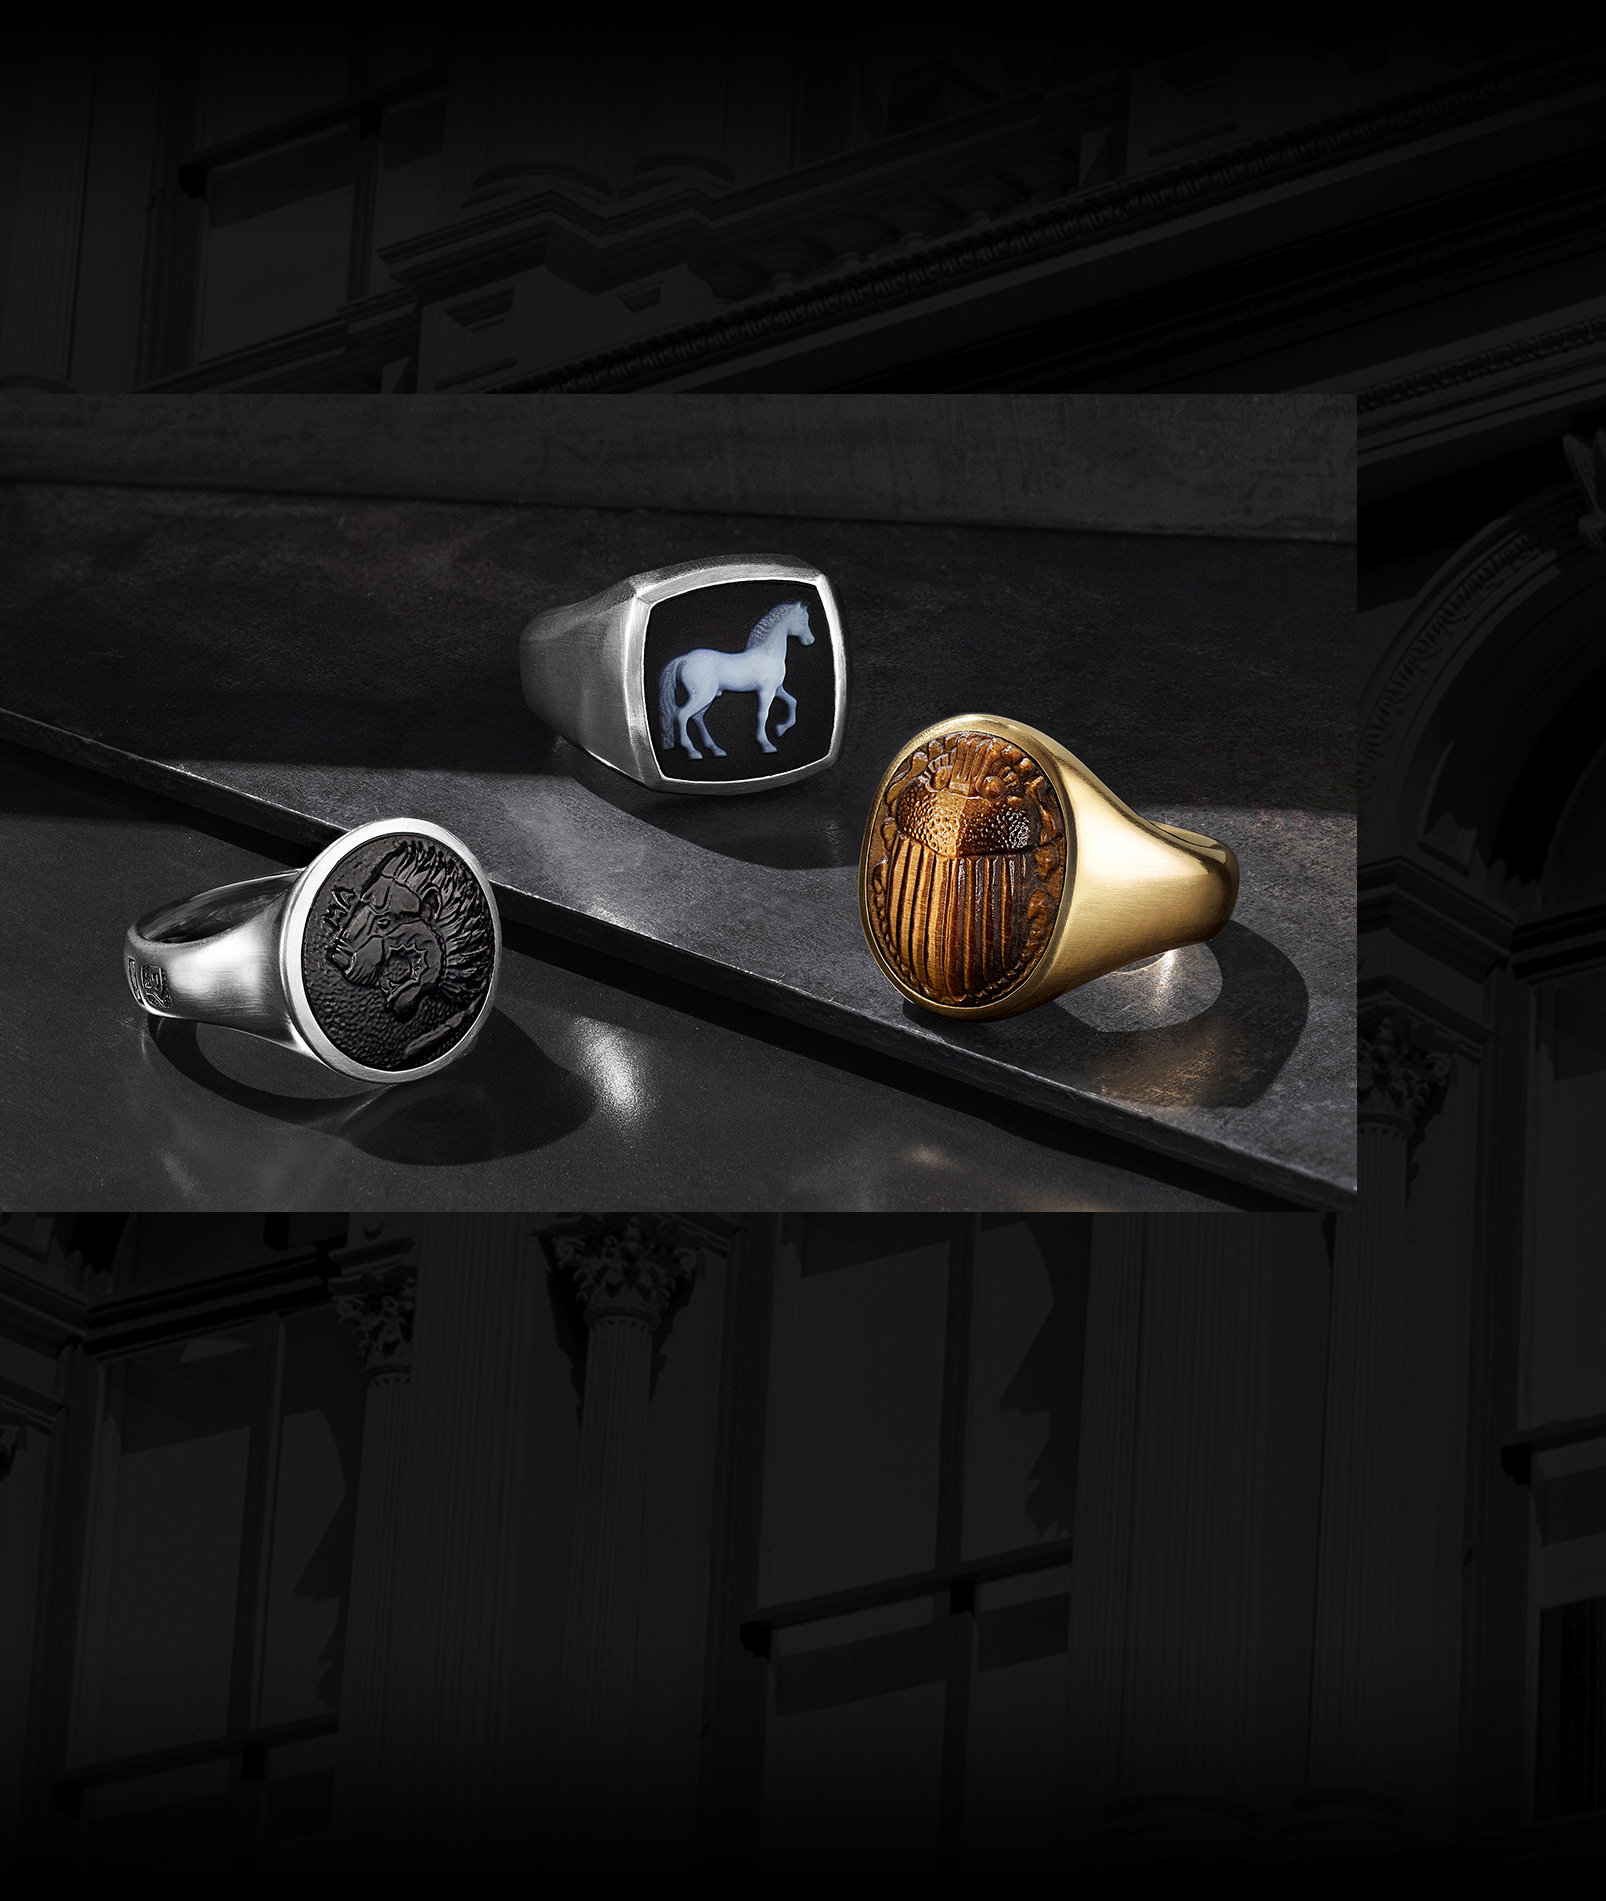 An image of three Petrvs signet rings scattered on a dark grey stepped stone surface. The rings each feature a carved center gemstone with a lion, horse or scarab in black onyx, banded agate or tiger's eye. The jewelry is crafted from sterling silver or 18K yellow gold.